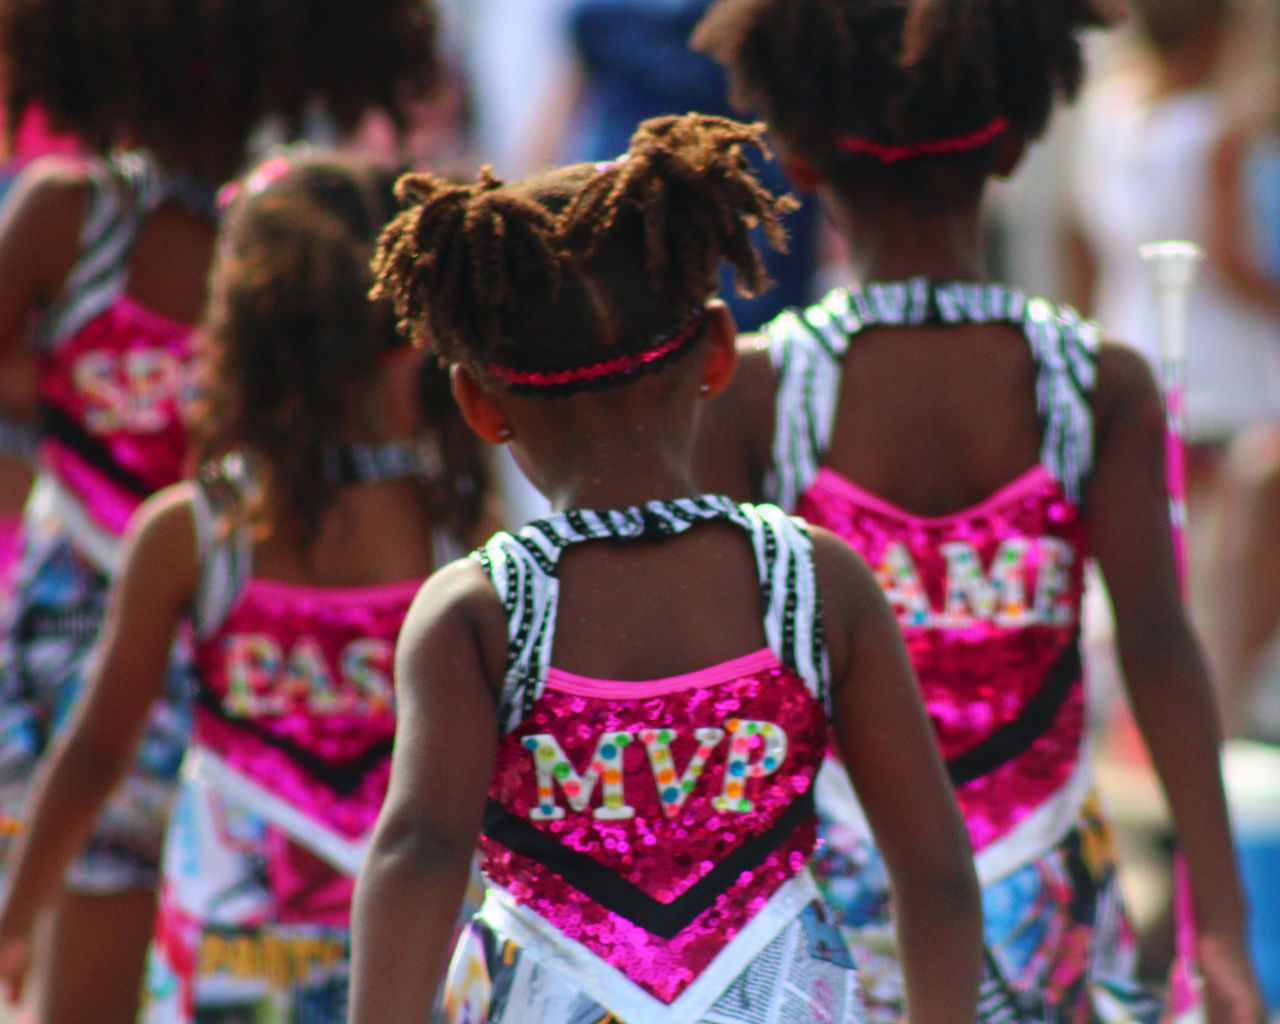 MVP Bermuda Bermuda Day Celebration Childhood Dancers Day Enjoyment Focus On Foreground Friendship Fun Girls Indoors  Leisure Activity Lifestyles Parade Real People Rear View Togetherness Vacations